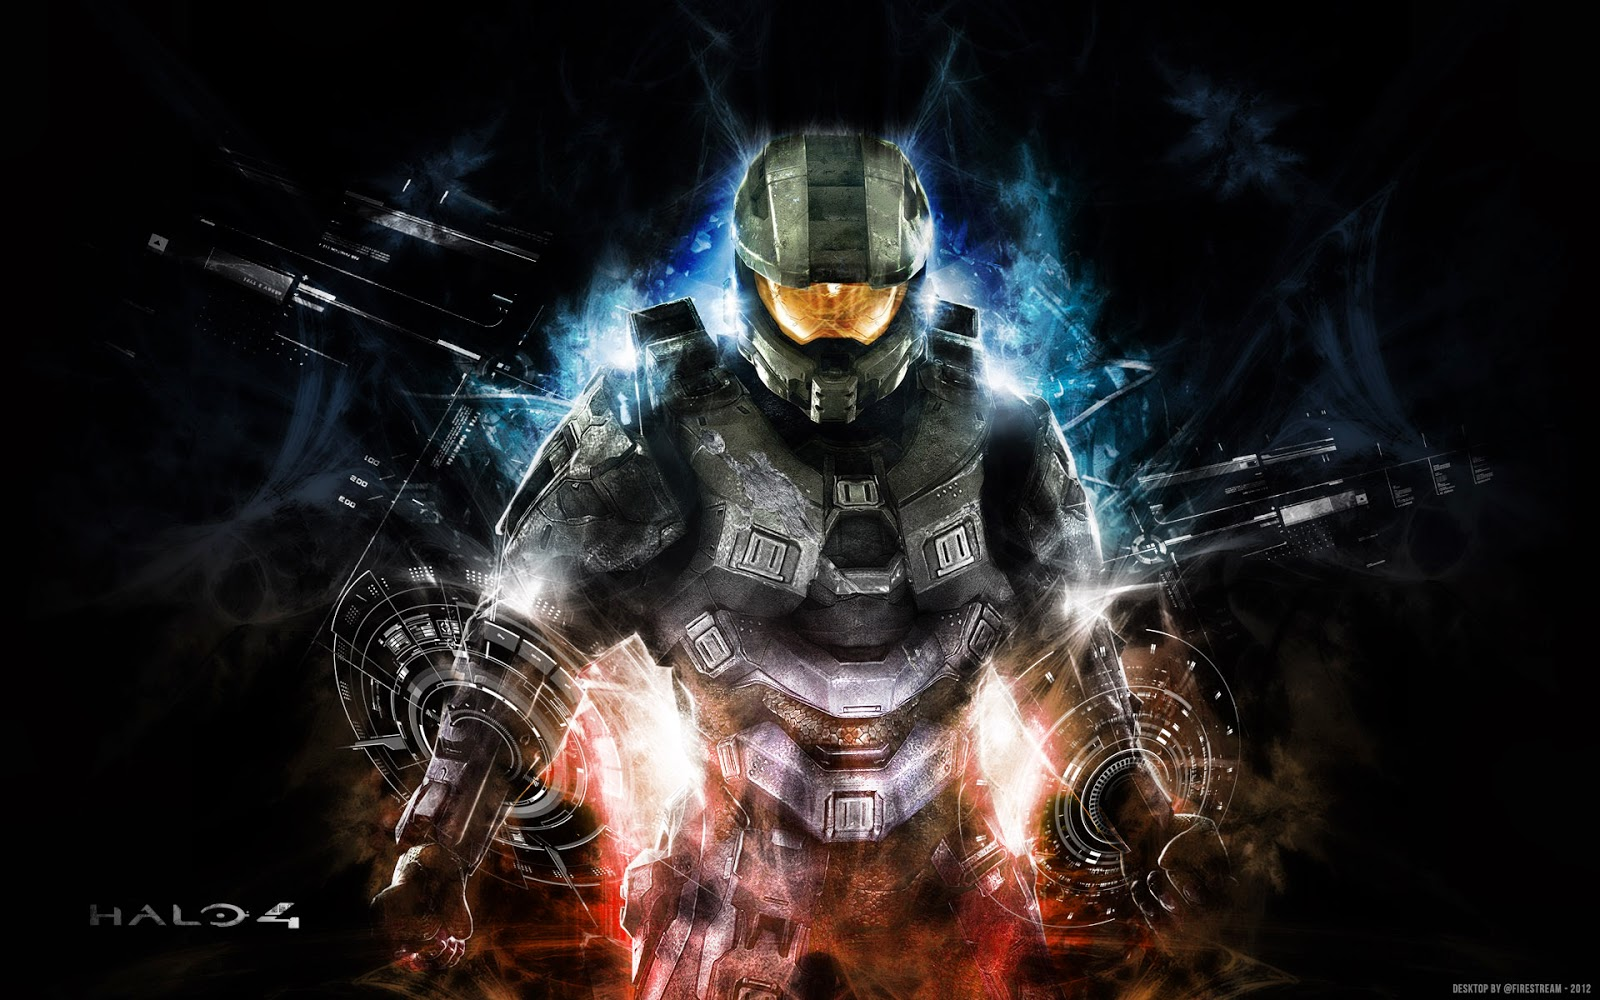 Hd Wallpapers Blog: Halo 4 Master Chief Wallpapers